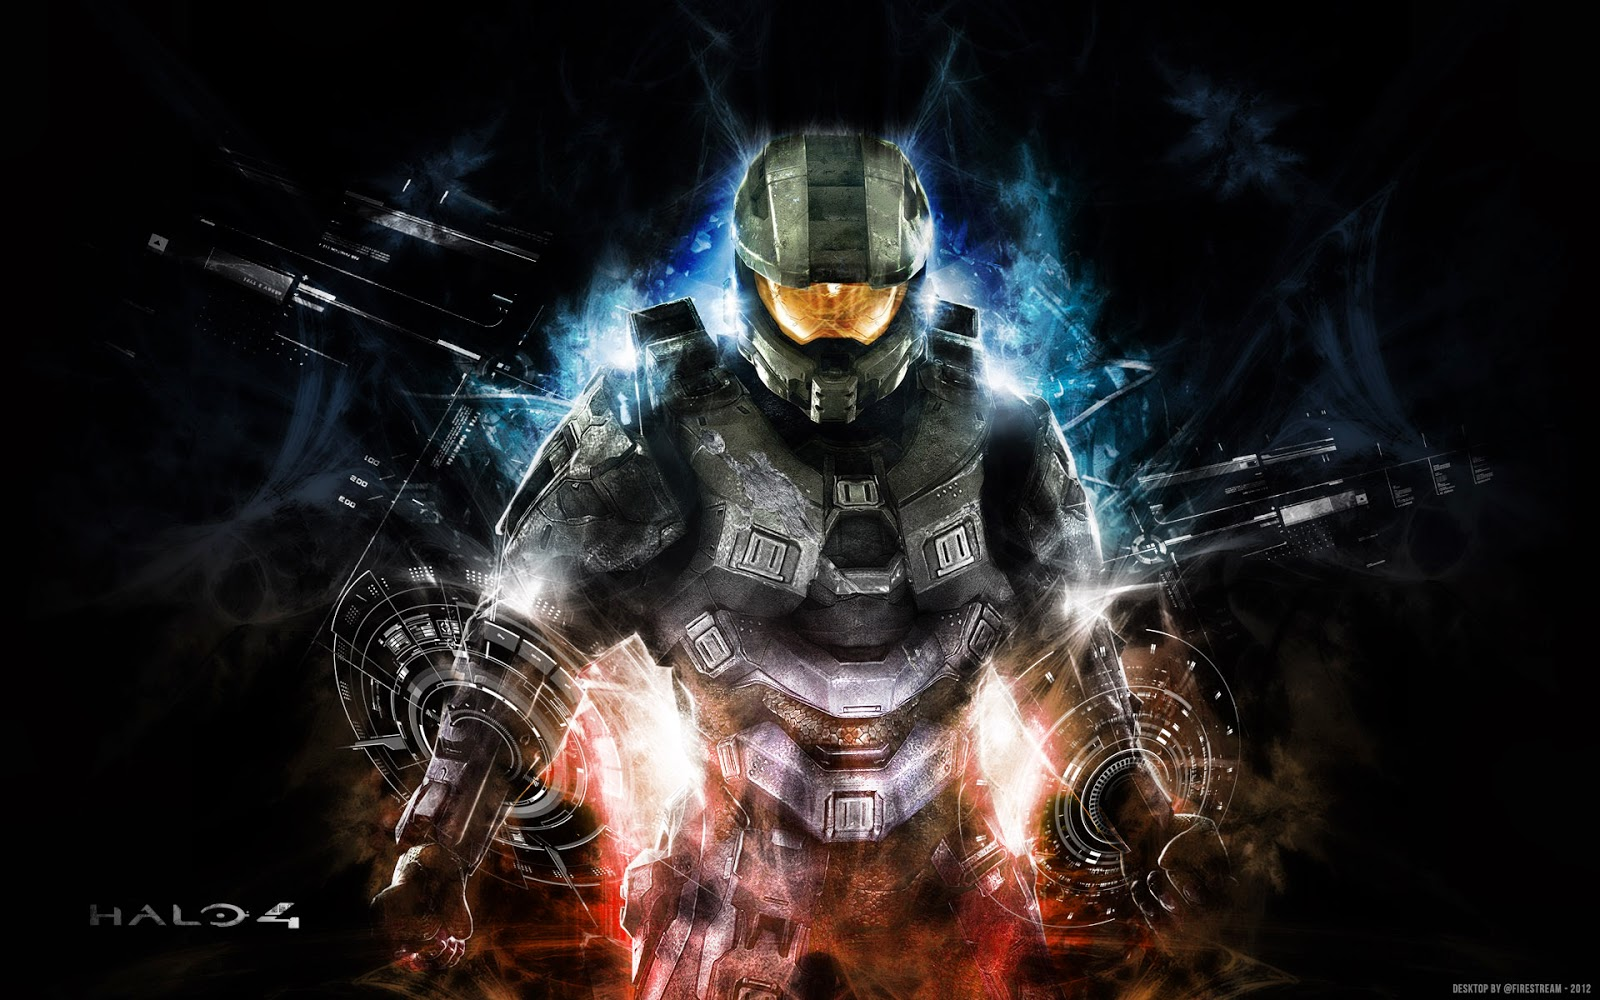 Hd Wallpapers Blog: Halo 4 Master Chief Wallpapers